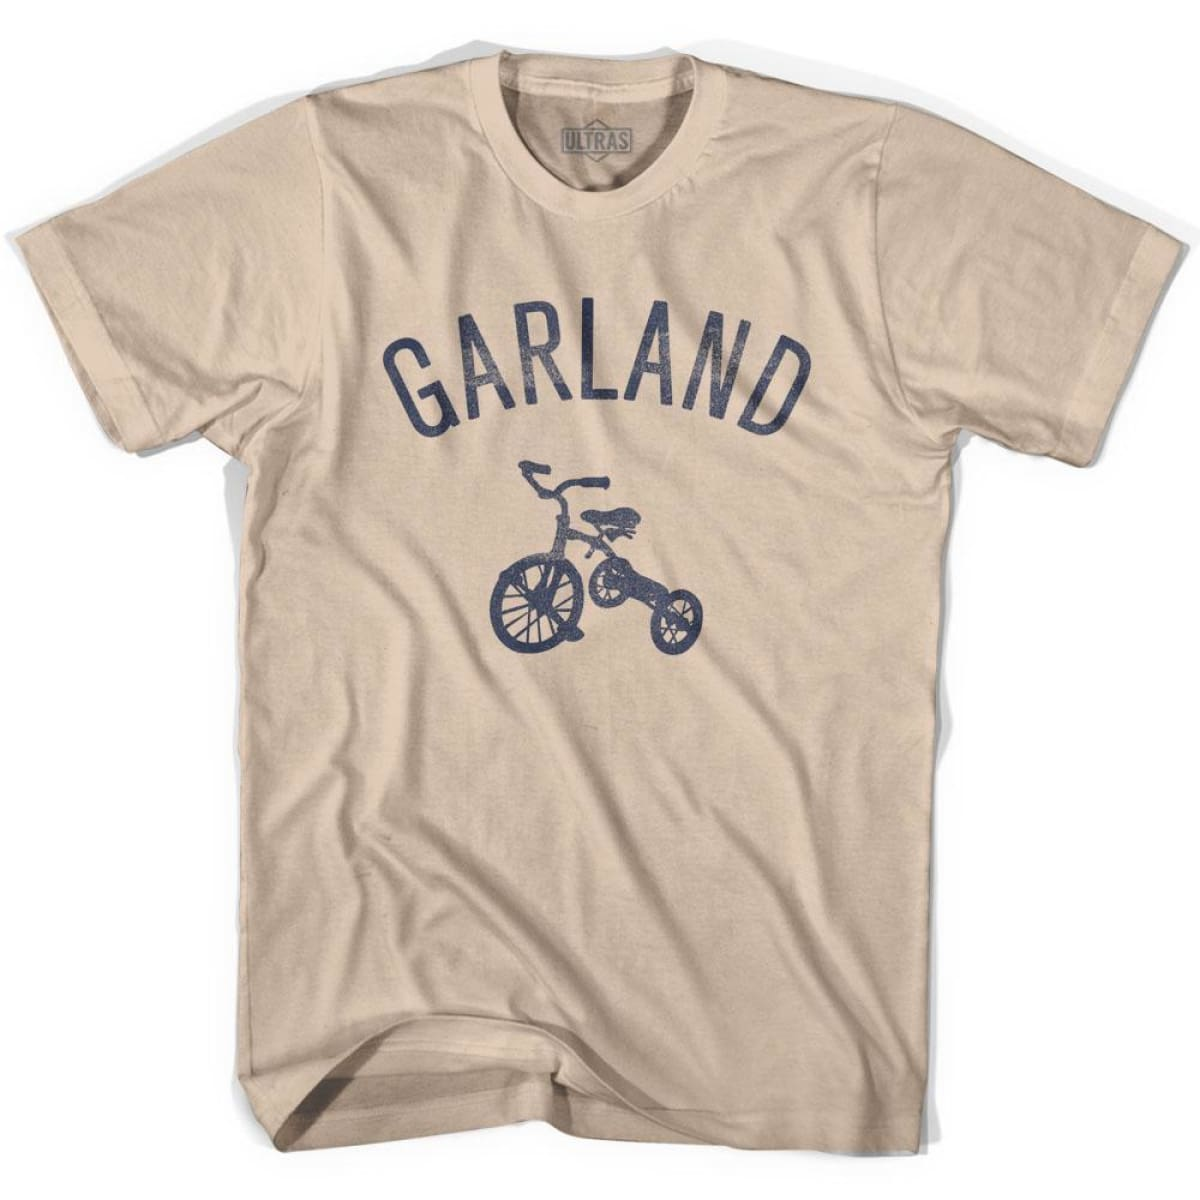 Garland City Tricycle Adult Cotton T-shirt - Tricycle City